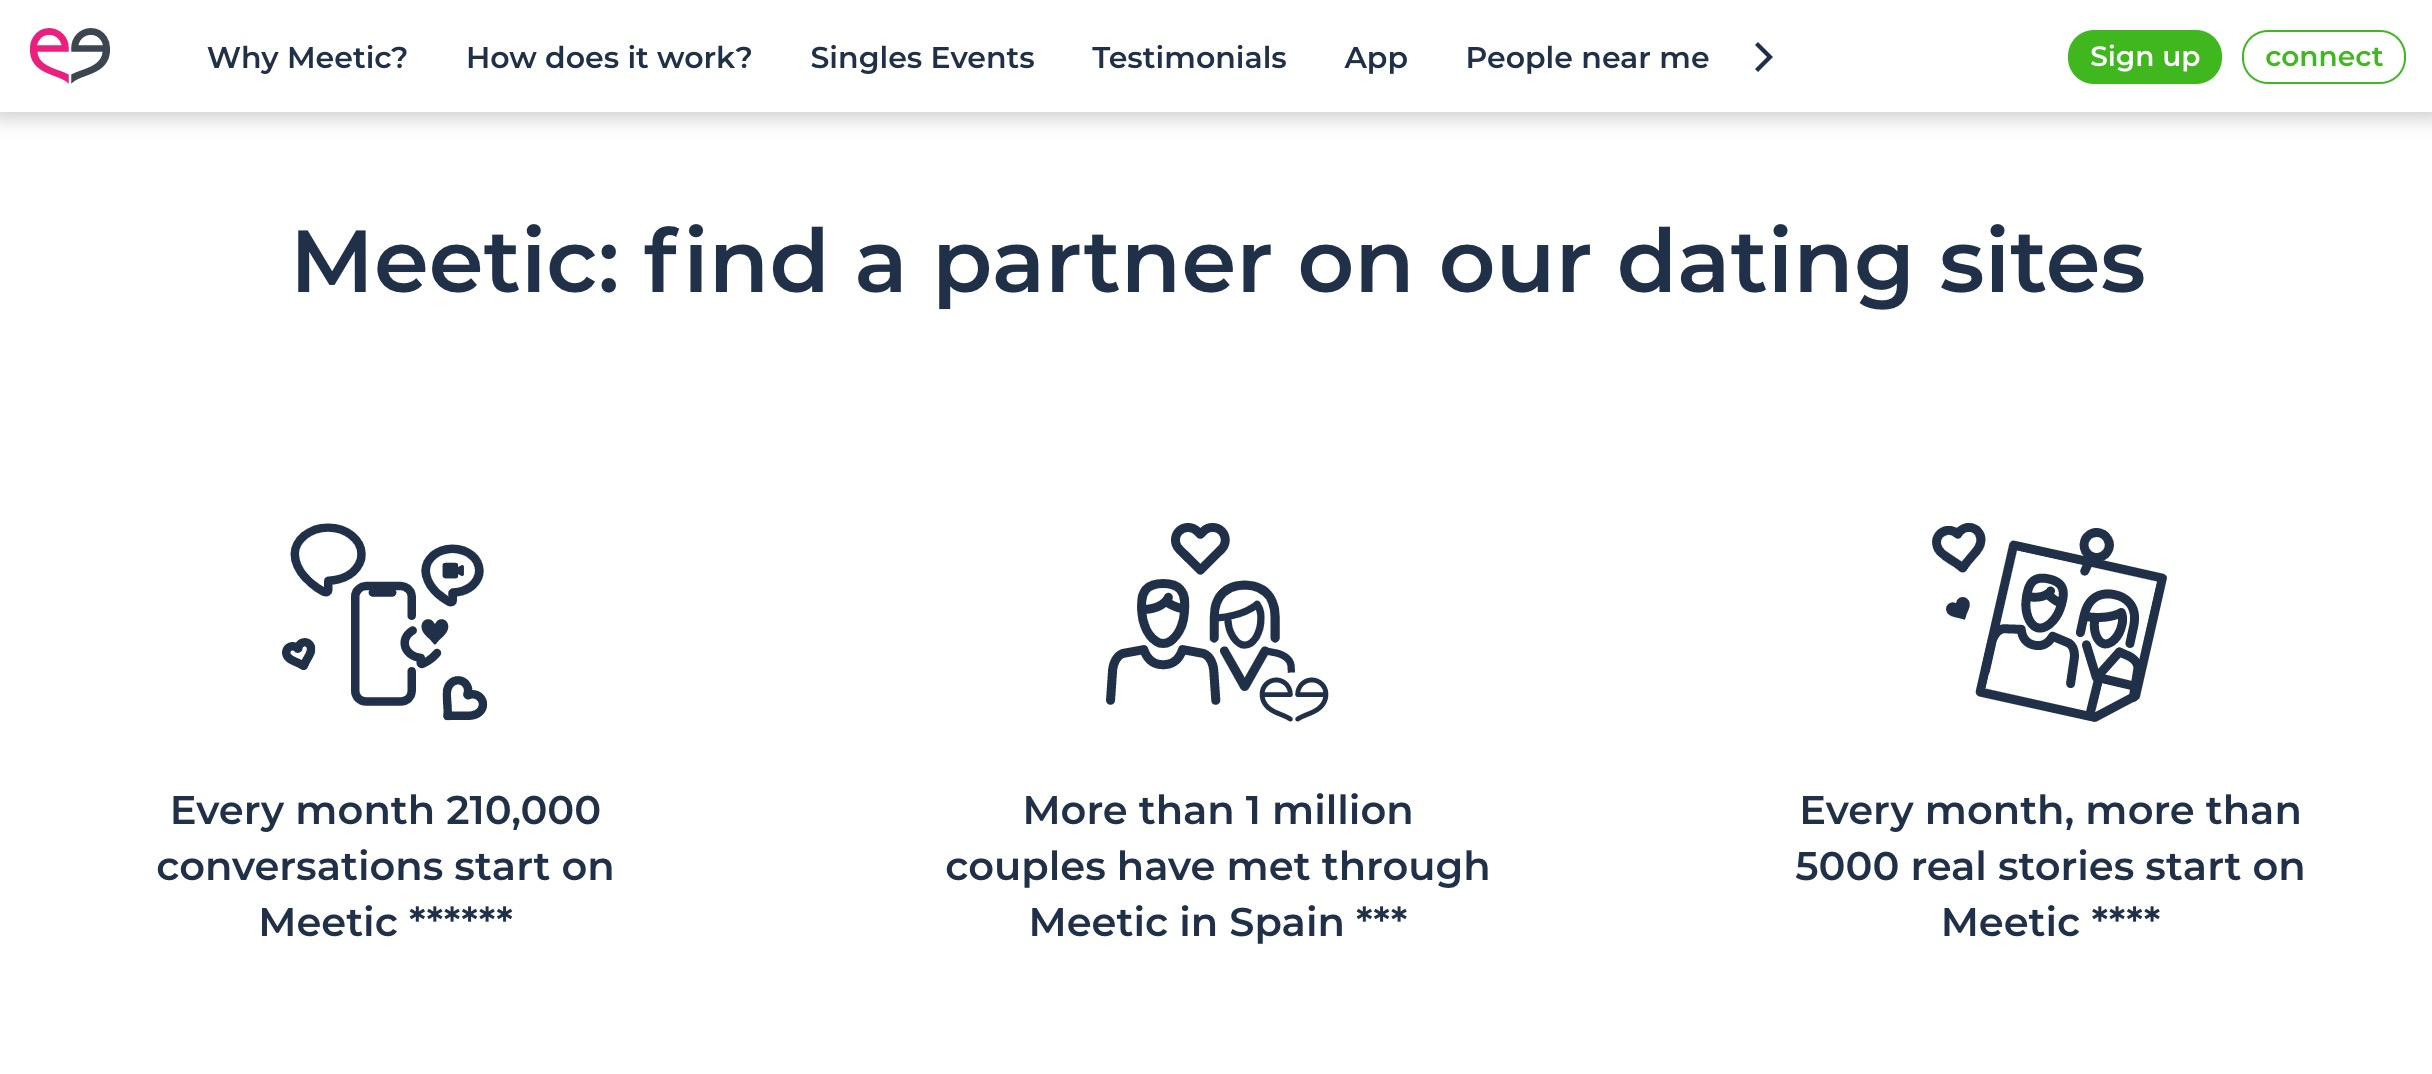 Meetic find a partner